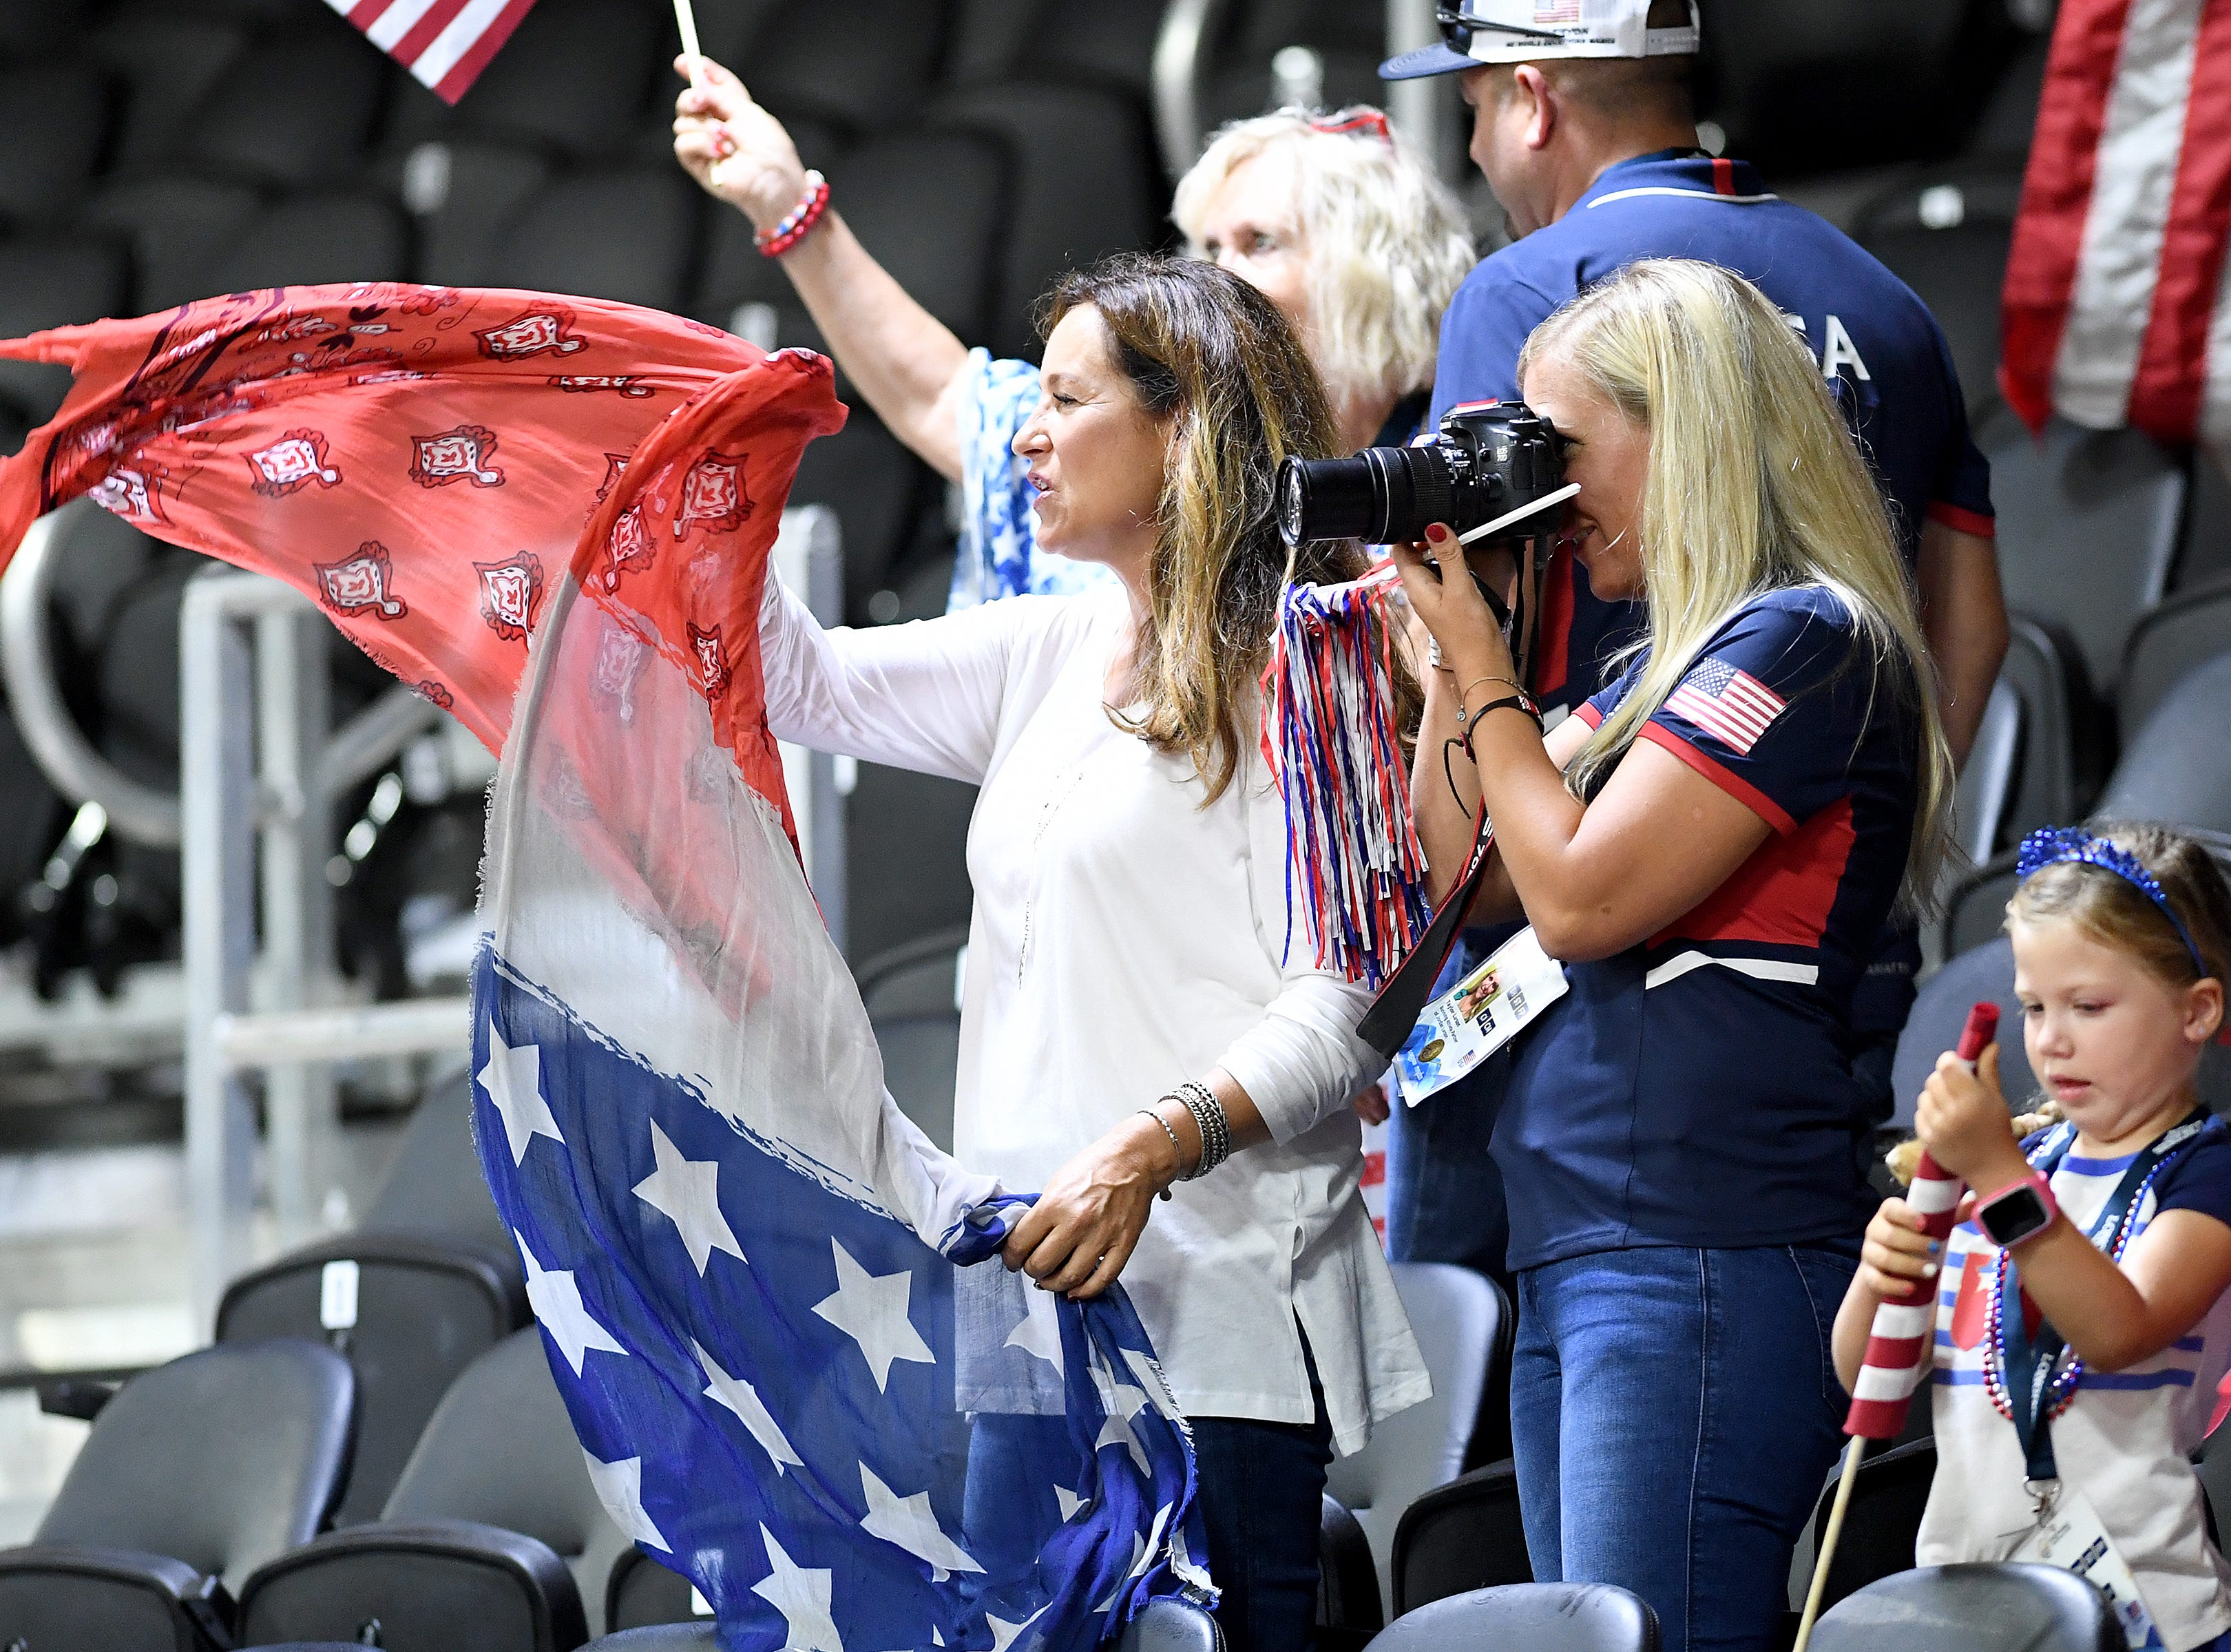 American fans cheer during the reining competition of the FEI World Equestrian Games at the Tryon International Equestrian Center on Sept. 12, 2018.